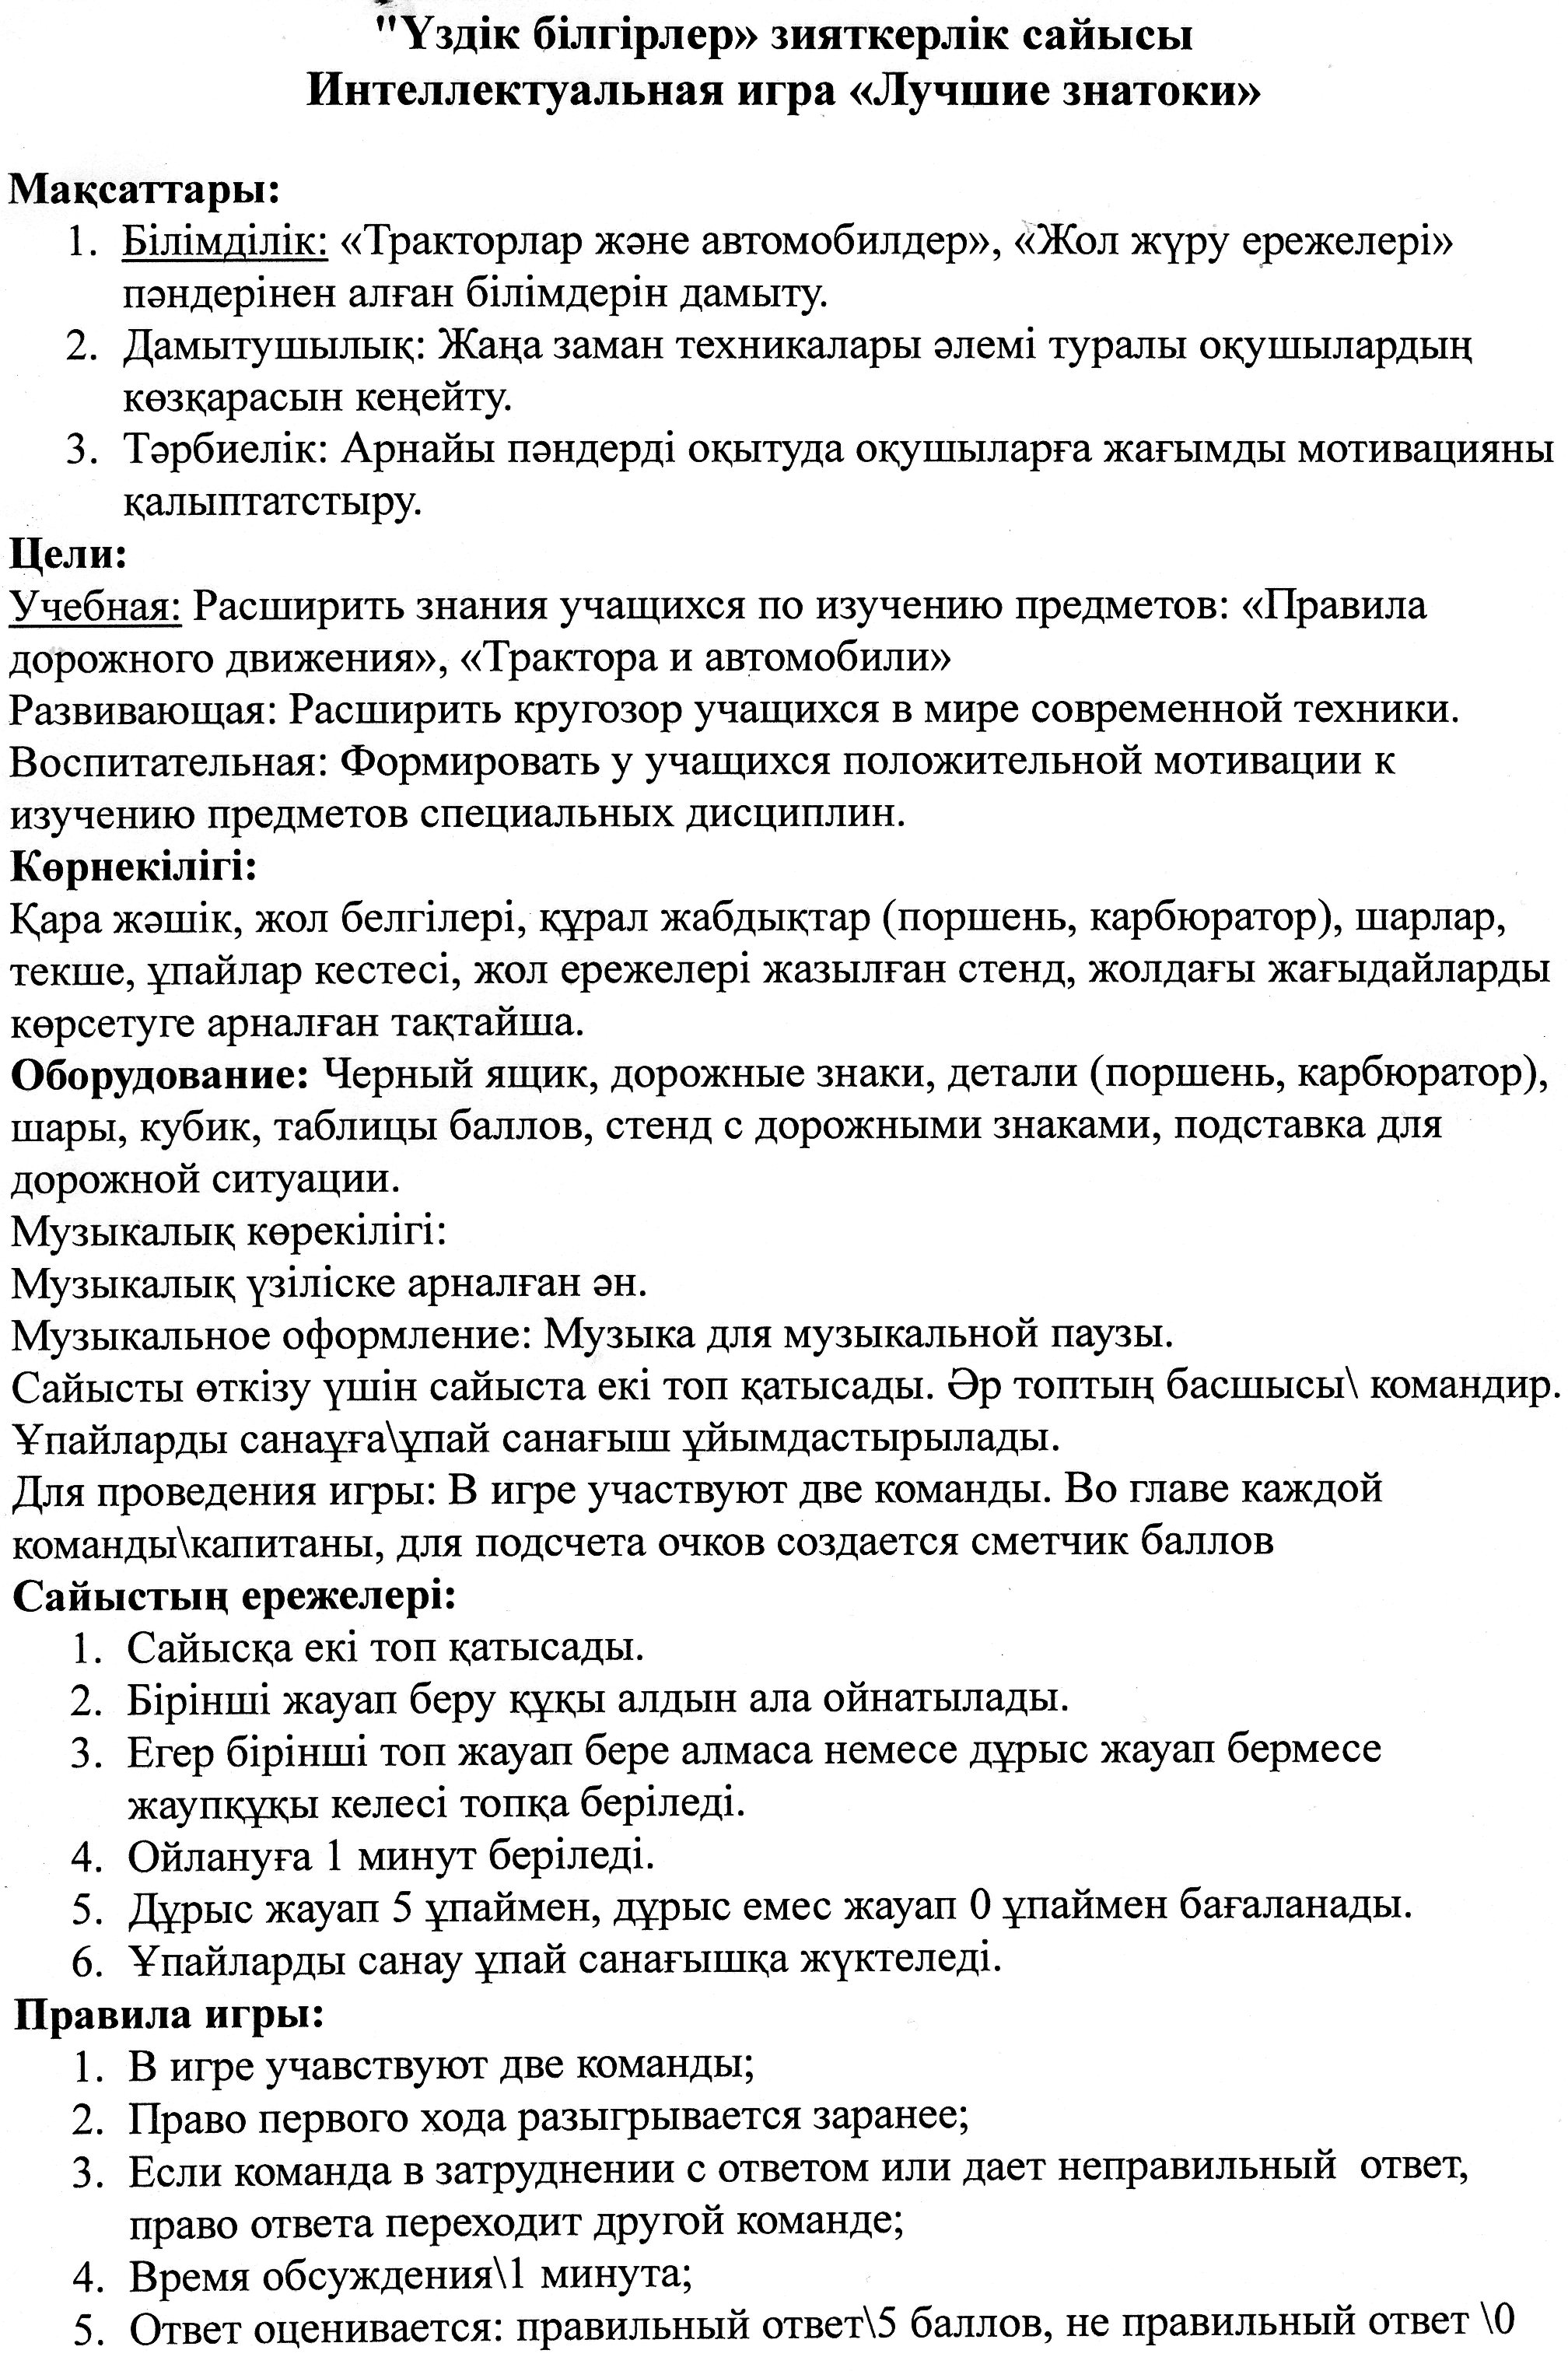 C:\Users\Василий Мельченко\Pictures\img546.jpg